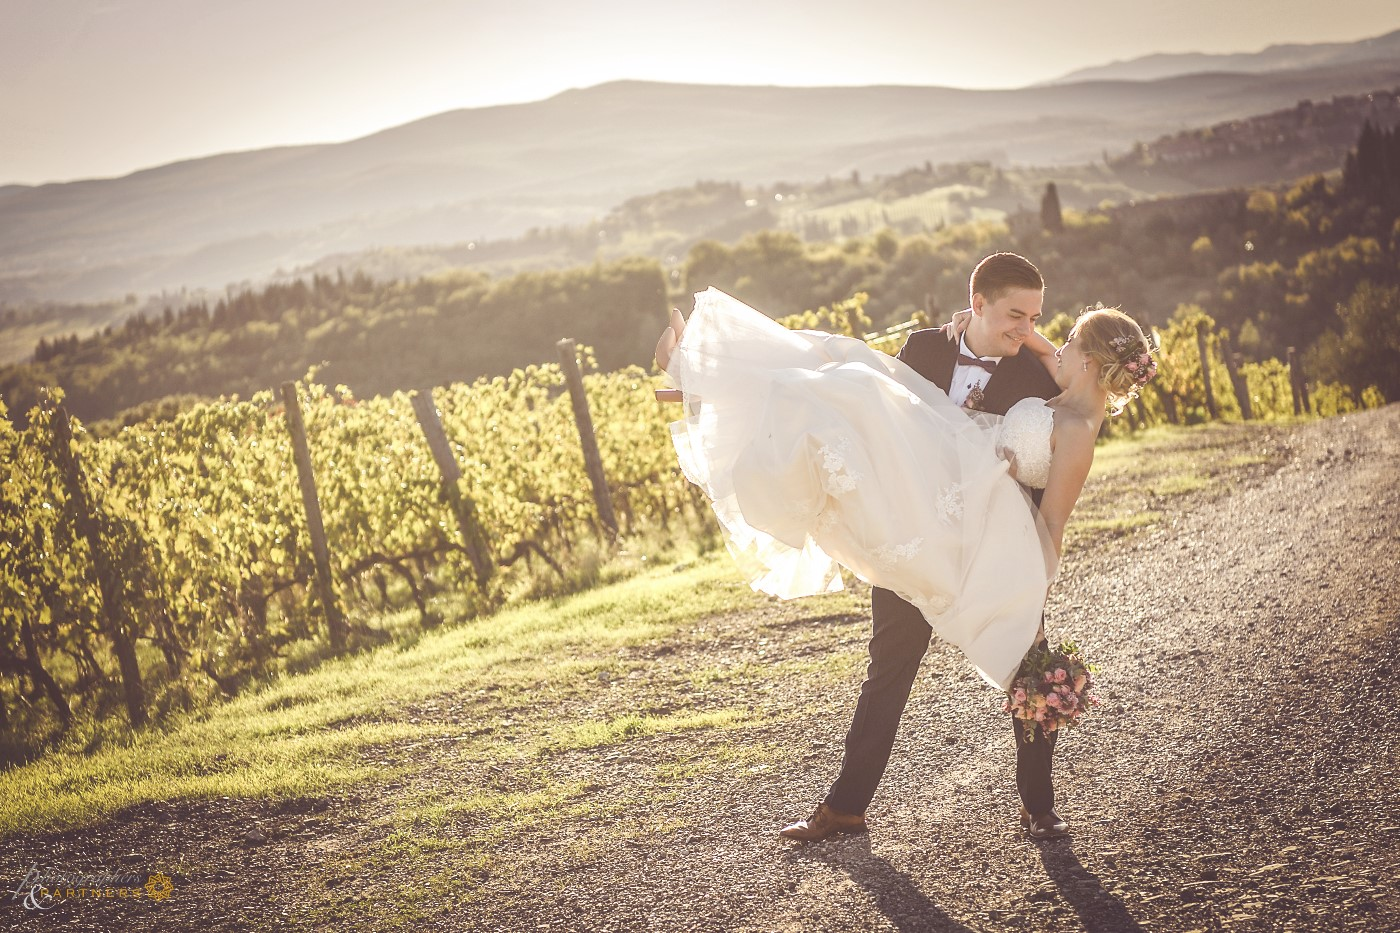 wedding_photos_fattoria_corsignano_16.jpg